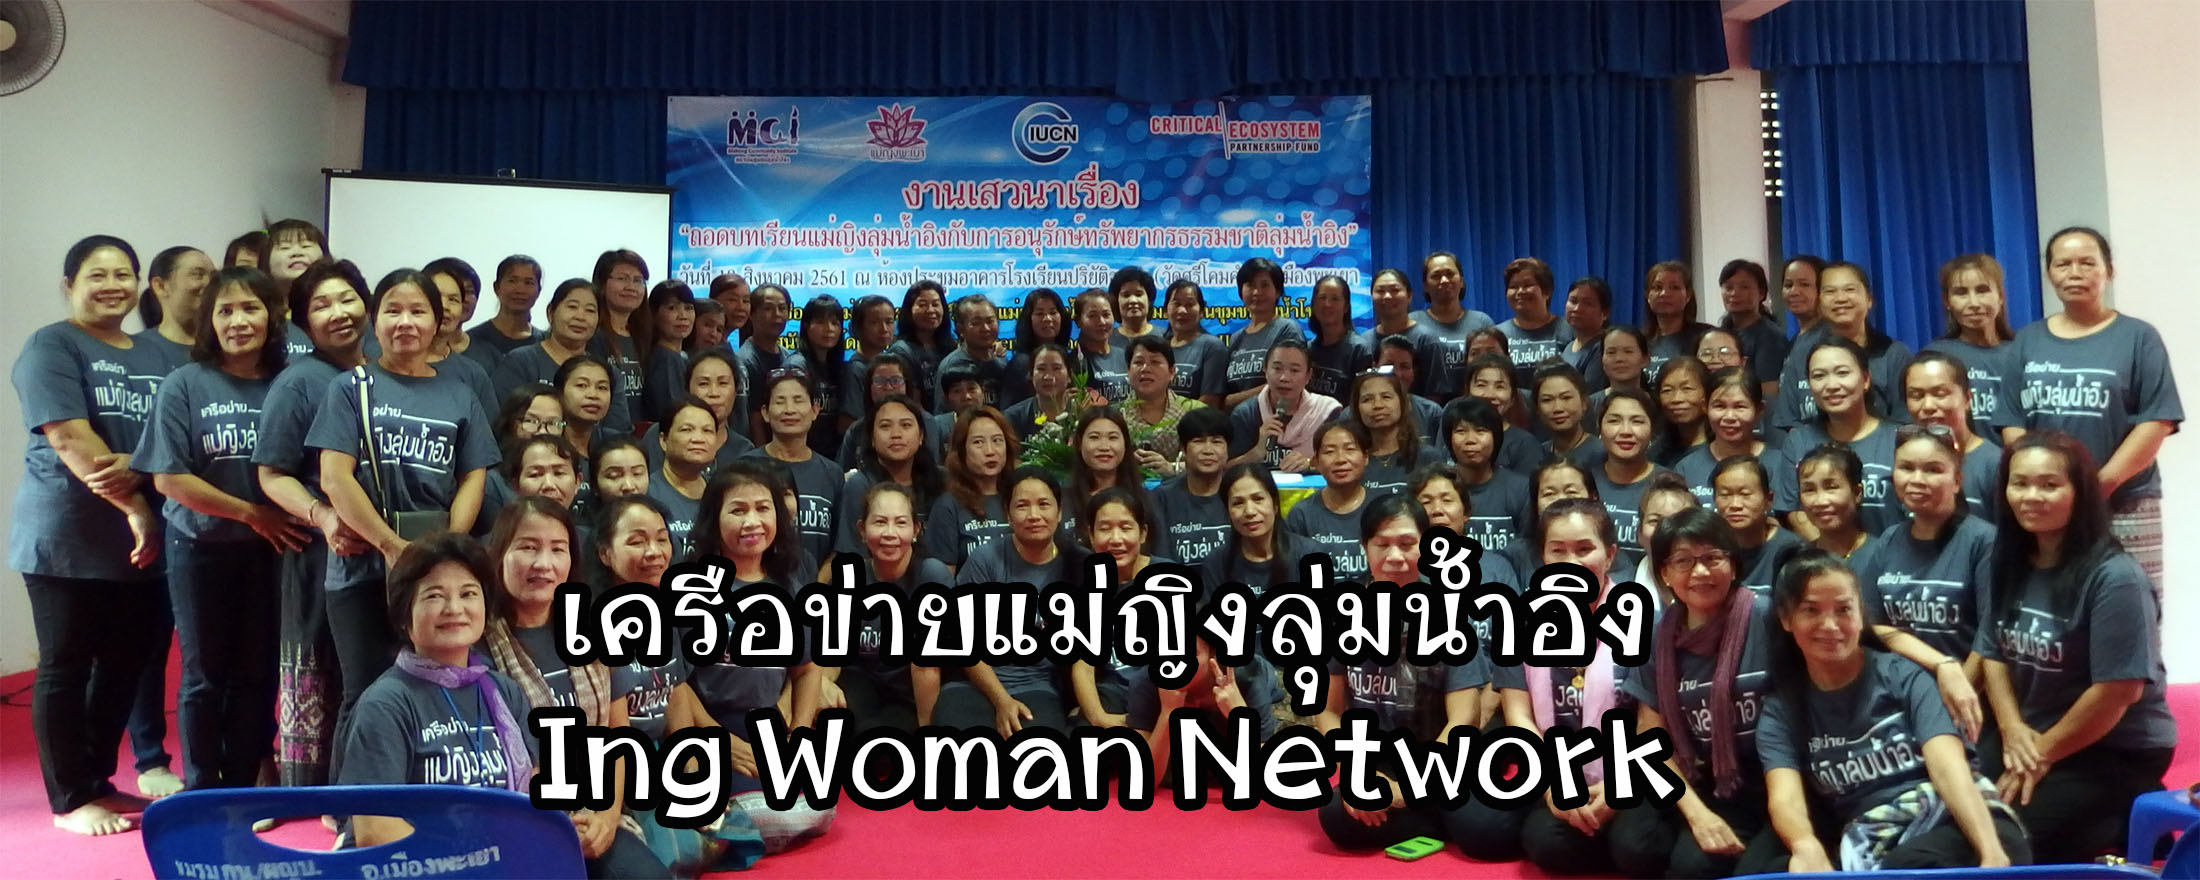 ing woman network 2018